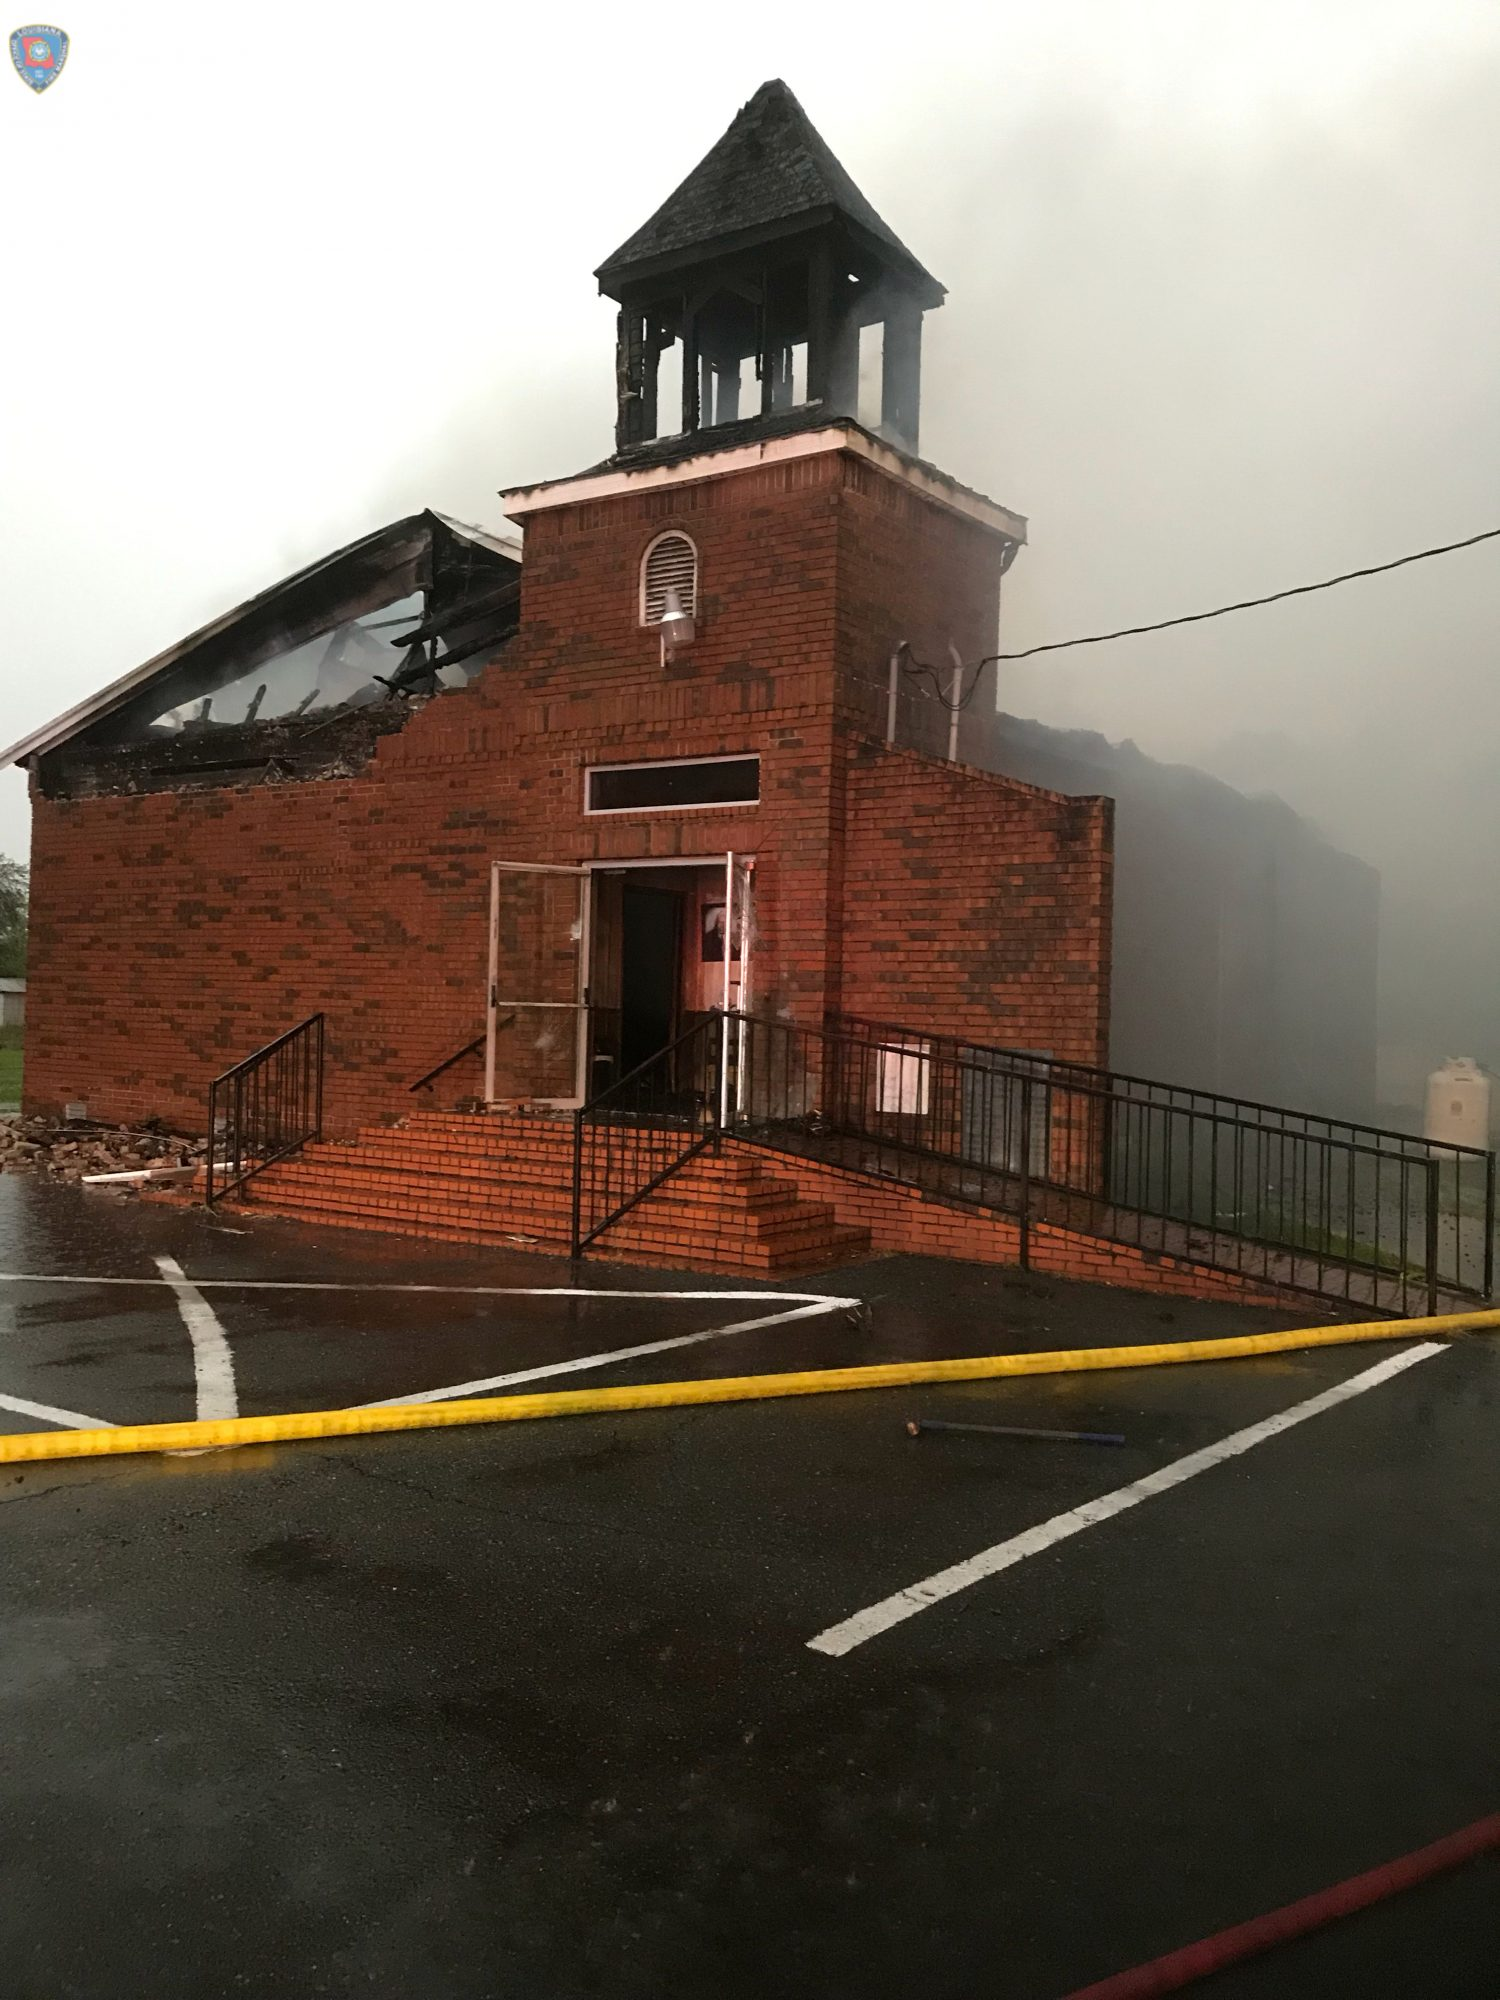 The Mount Pleasant Baptist Church in Opelousas, Louisiana, U.S. April 4, 2019 is pictured after a fire in this picture obtained from social media. Courtesy Louisiana Office Of State Fire Marshal/Handout via REUTERS